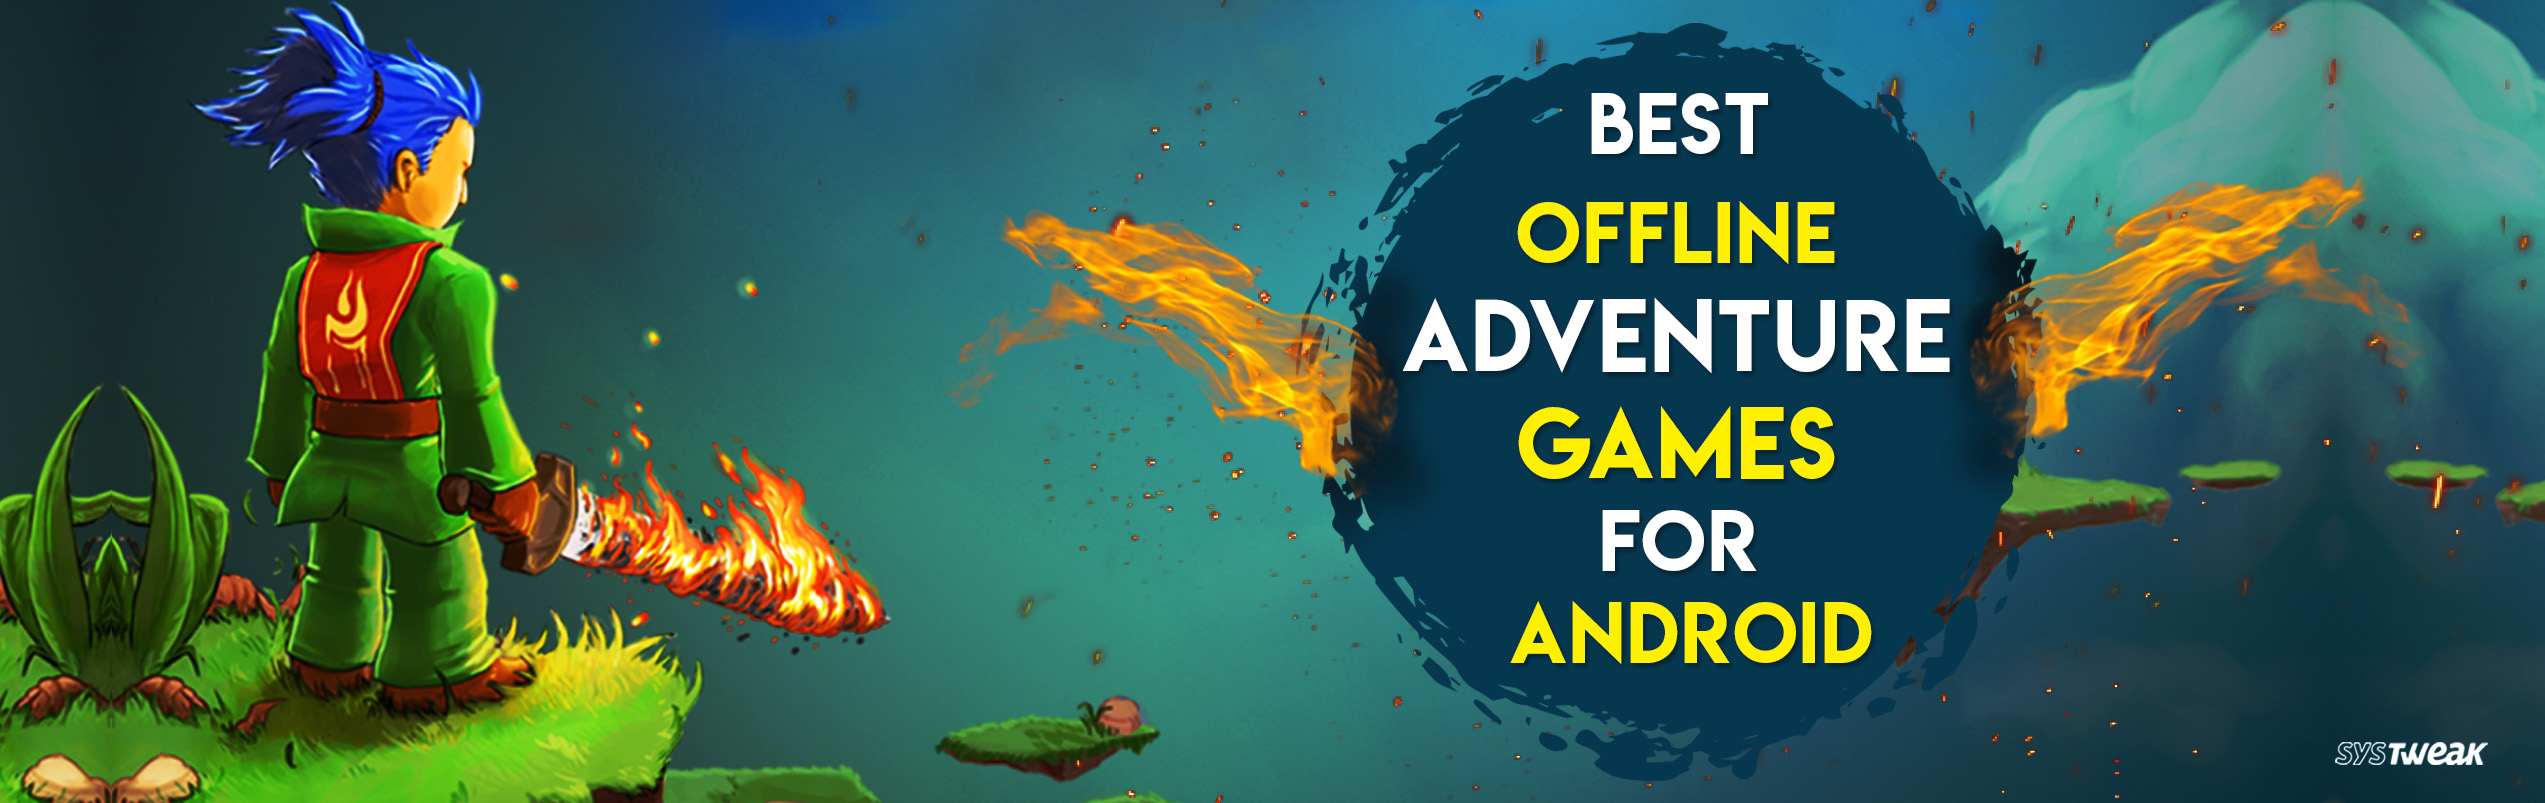 10 Best Offline Adventure Games For Android In 2018